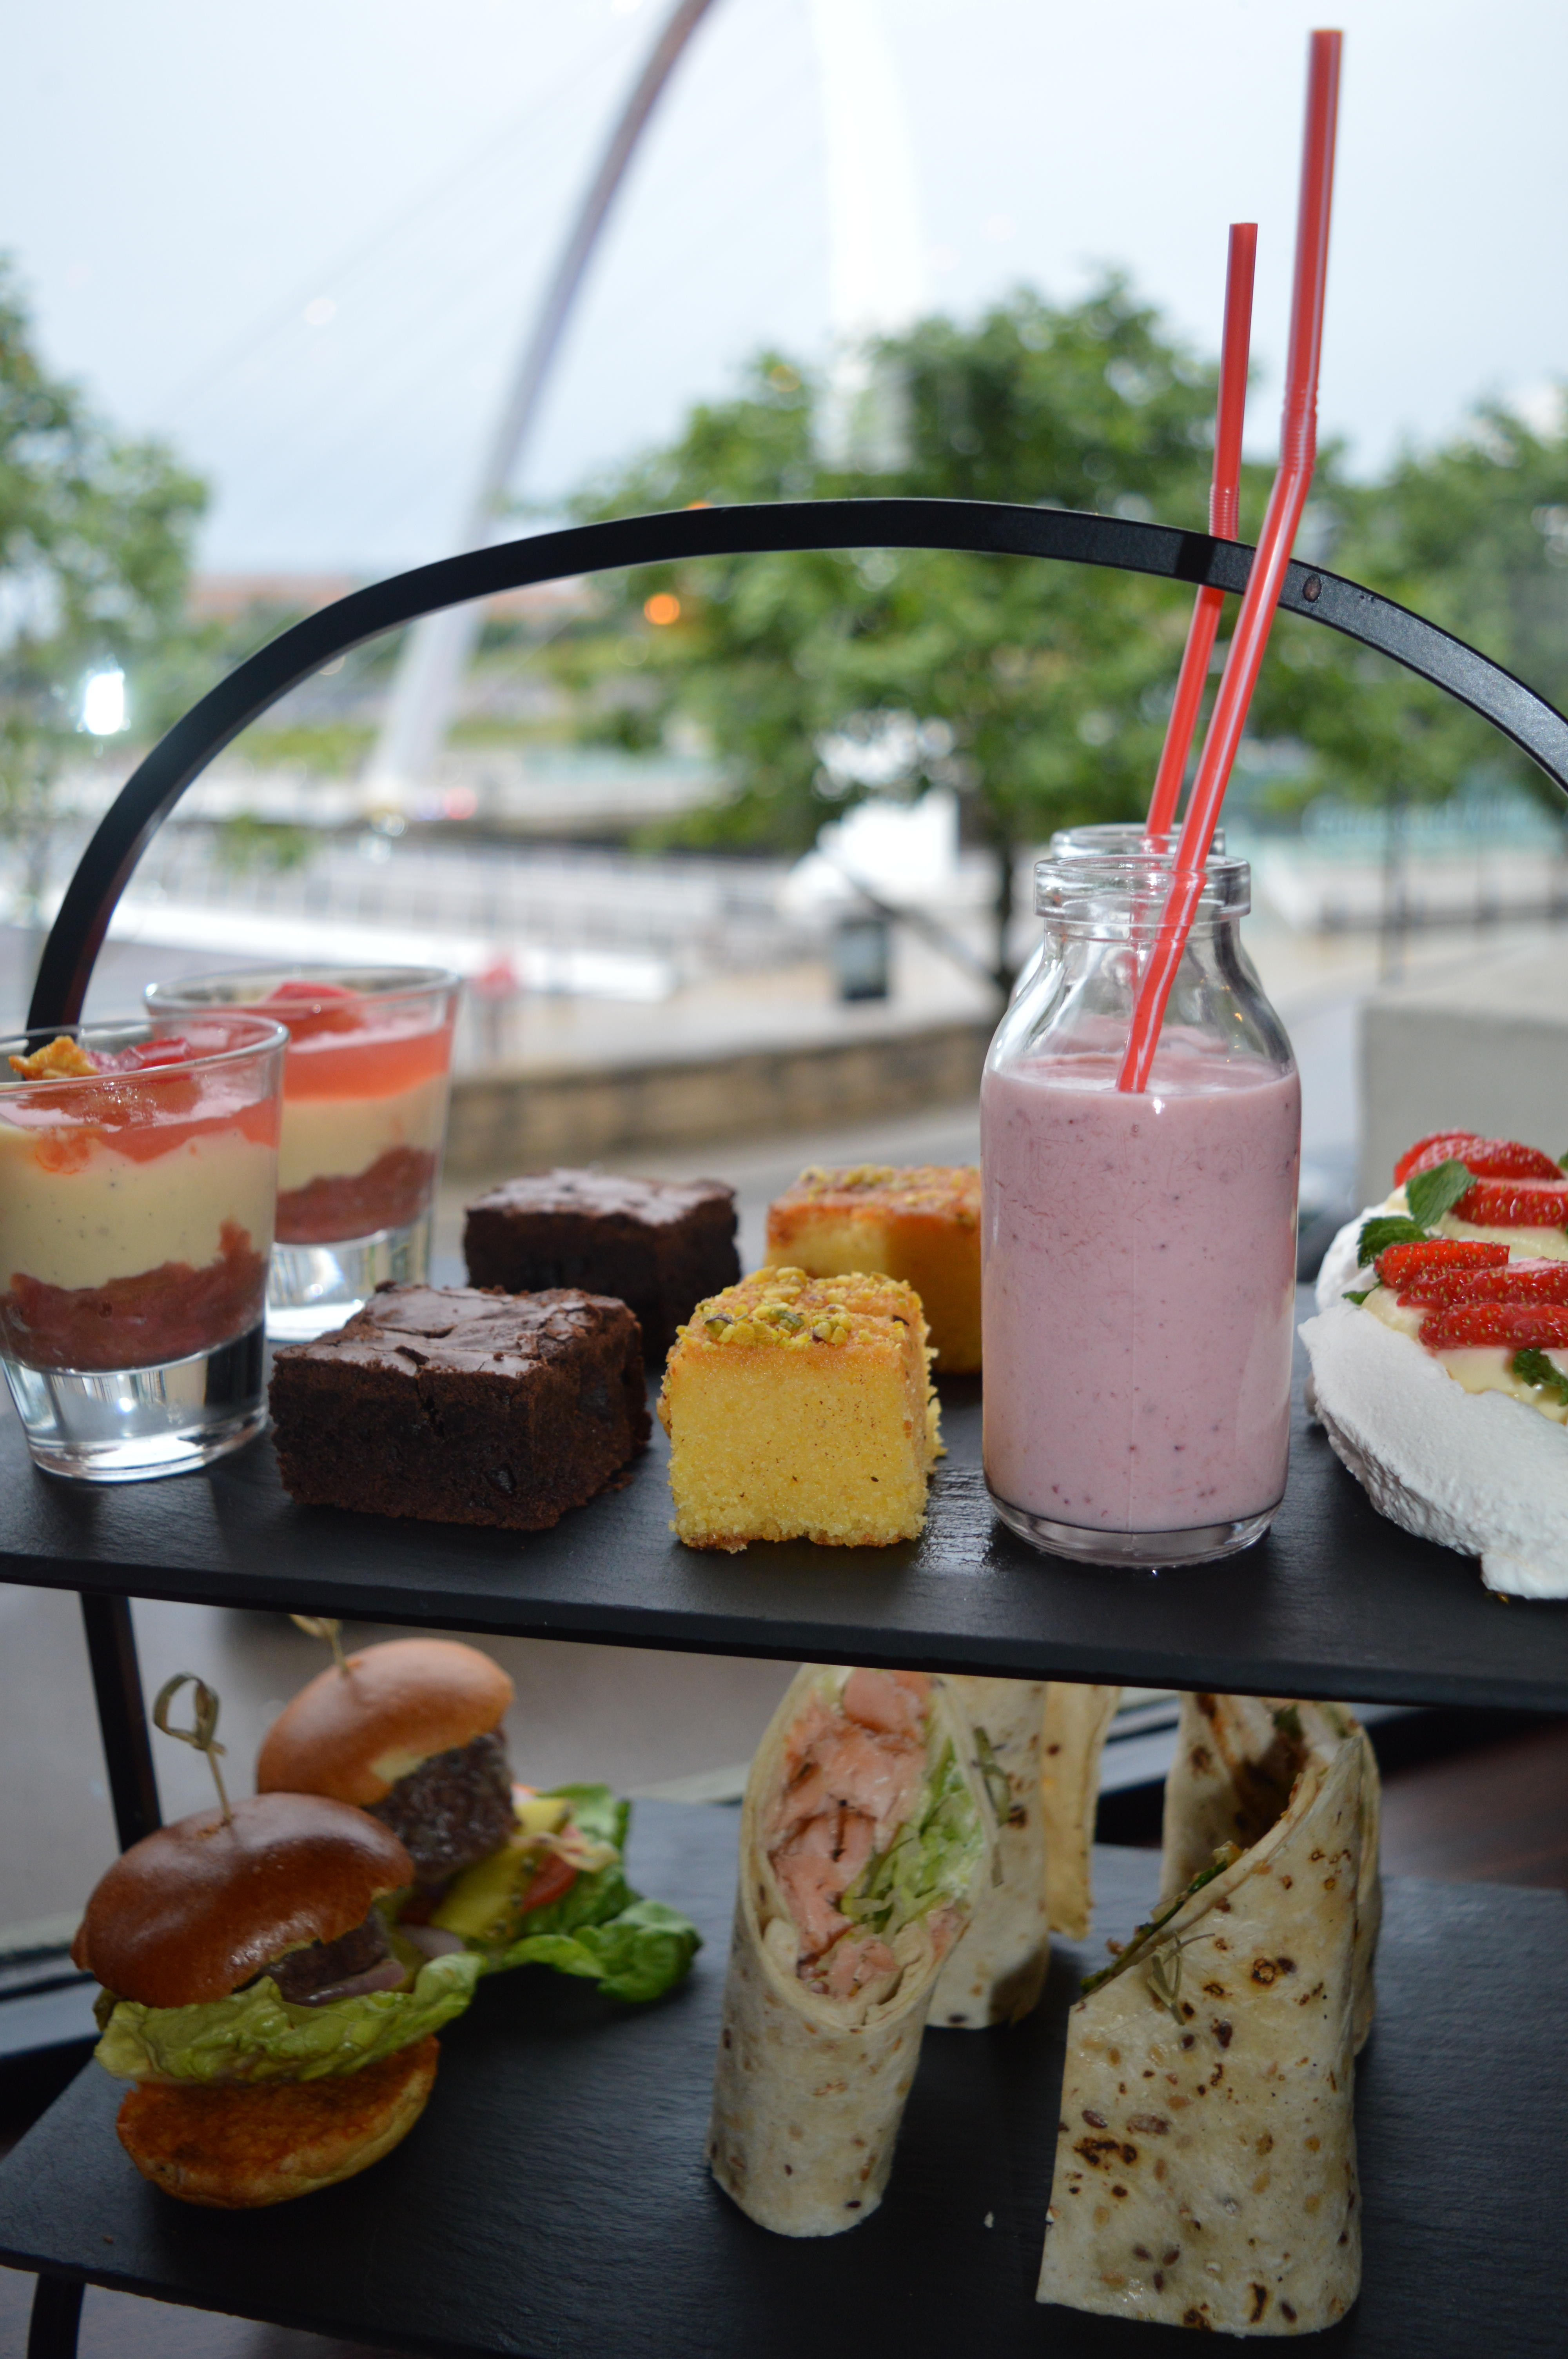 Afternoon Tea at The Malmaison Newcastle Quayside | Where to eat in Newcastle Food Reviews & Guide | Elle Blonde Luxury Lifestyle Destination Blog